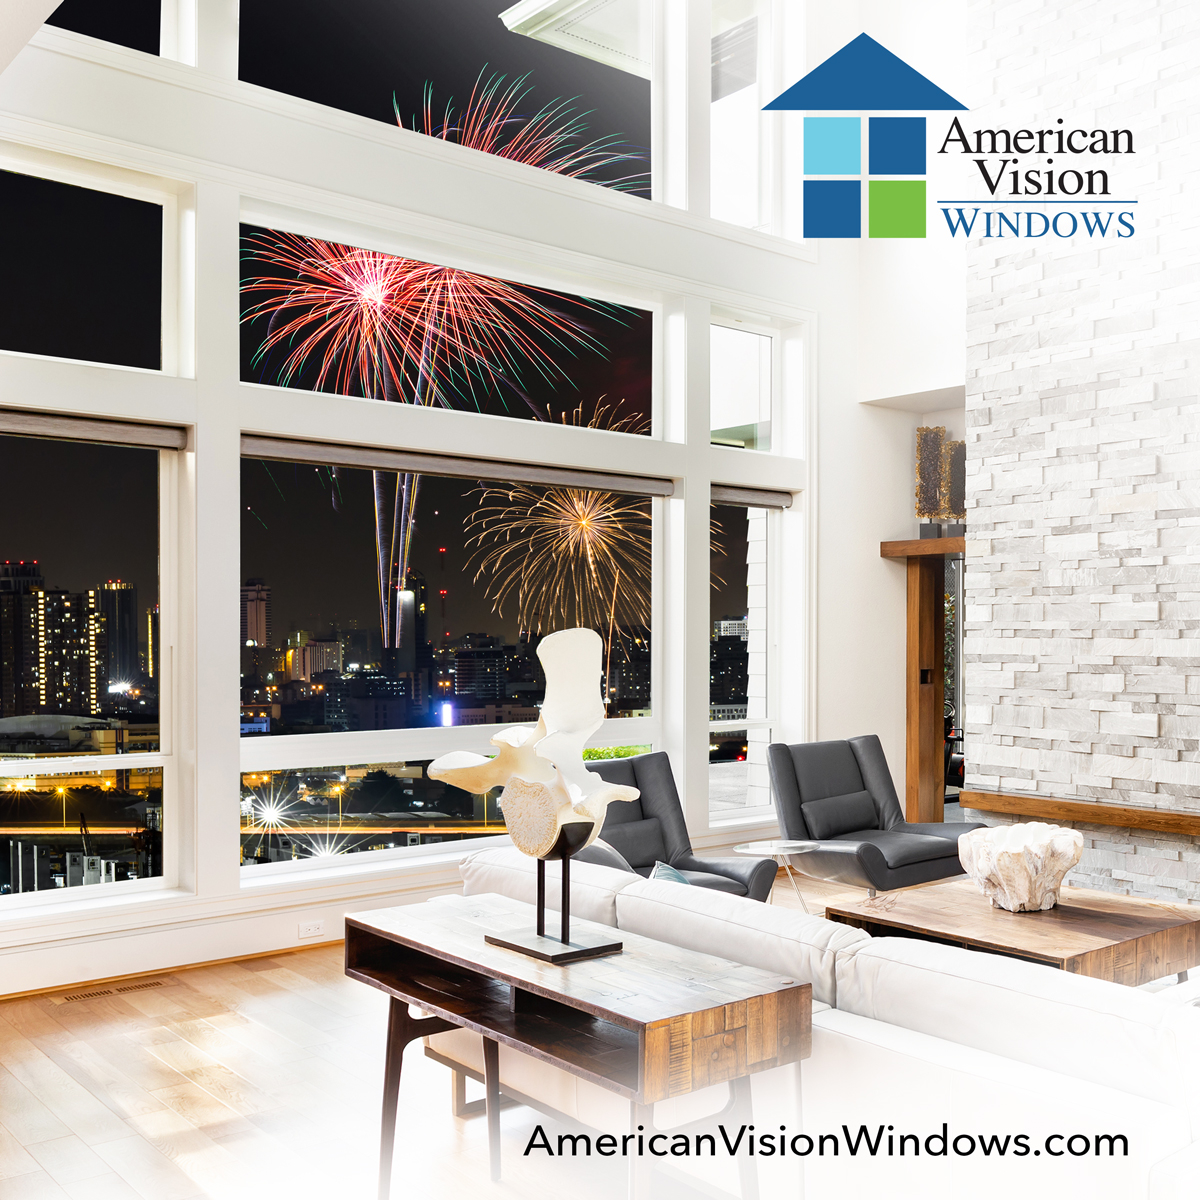 American vision windows simi valley california ca for Window design group simi valley